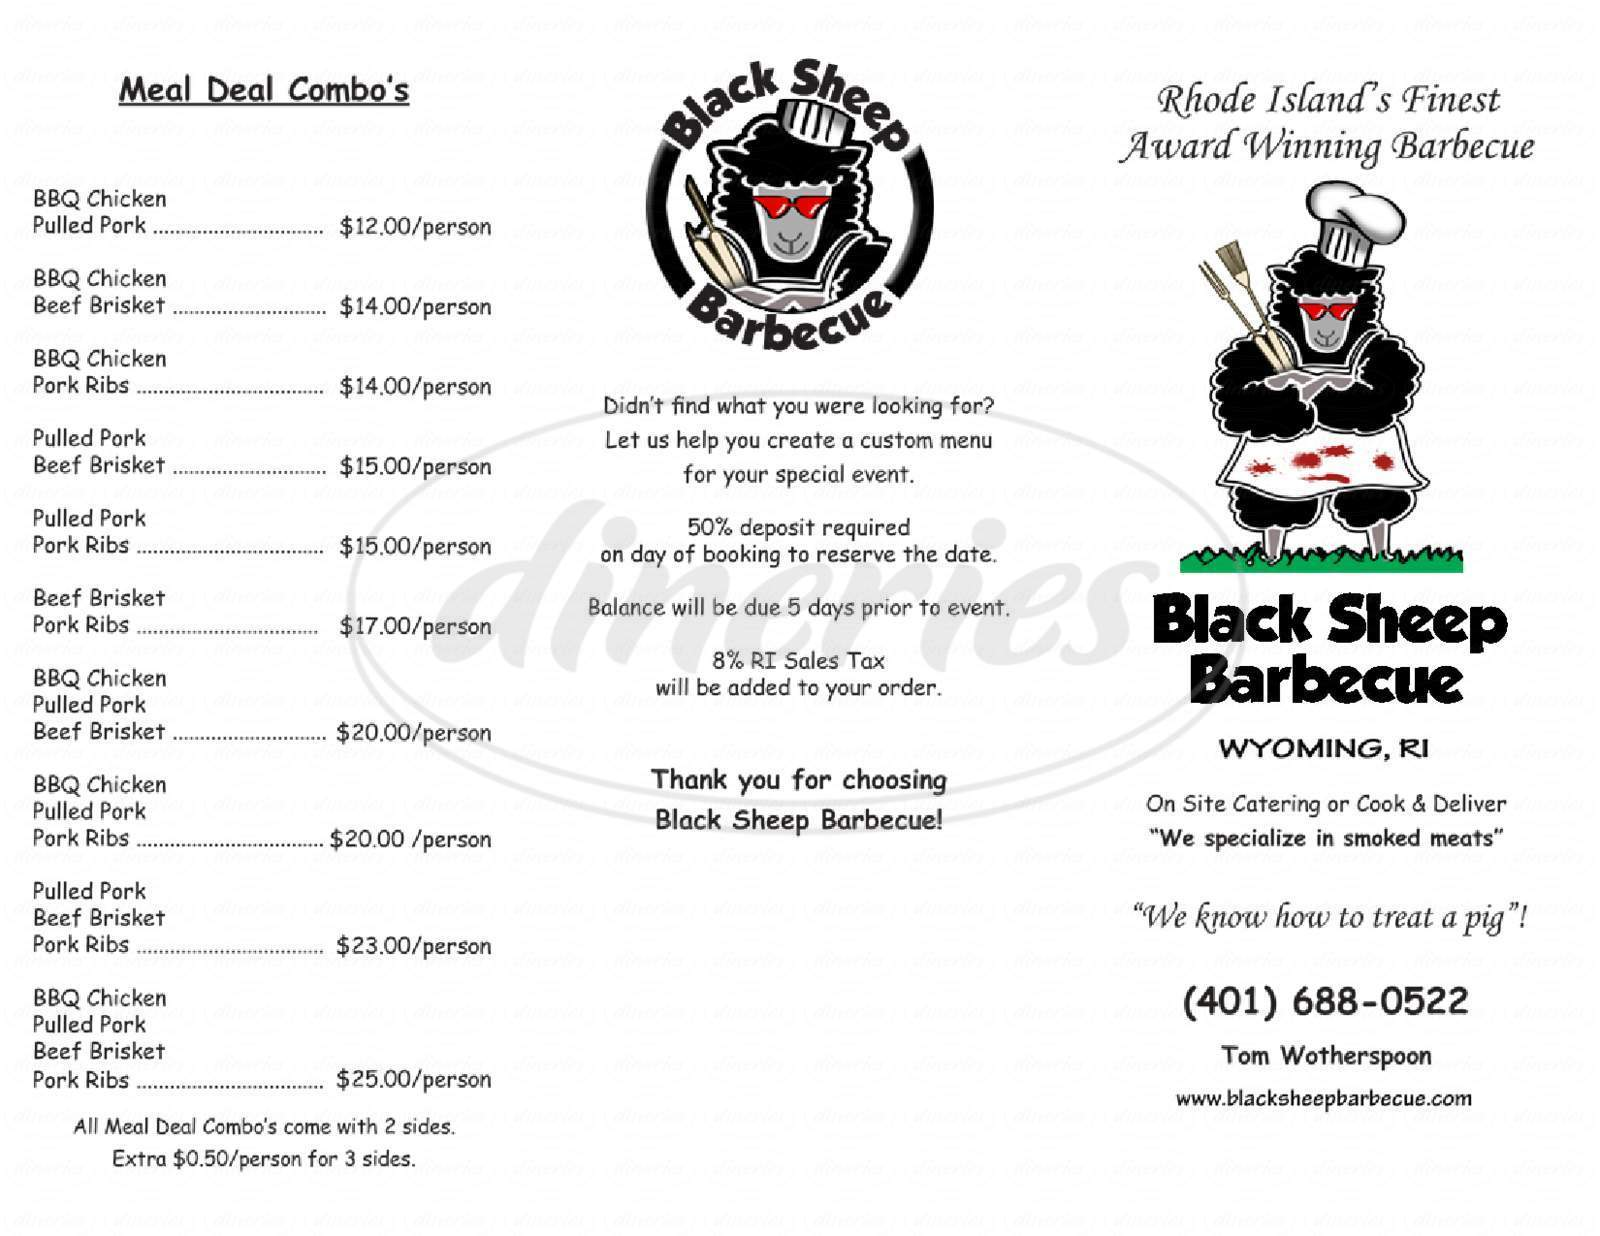 menu for Black Sheep Barbecue